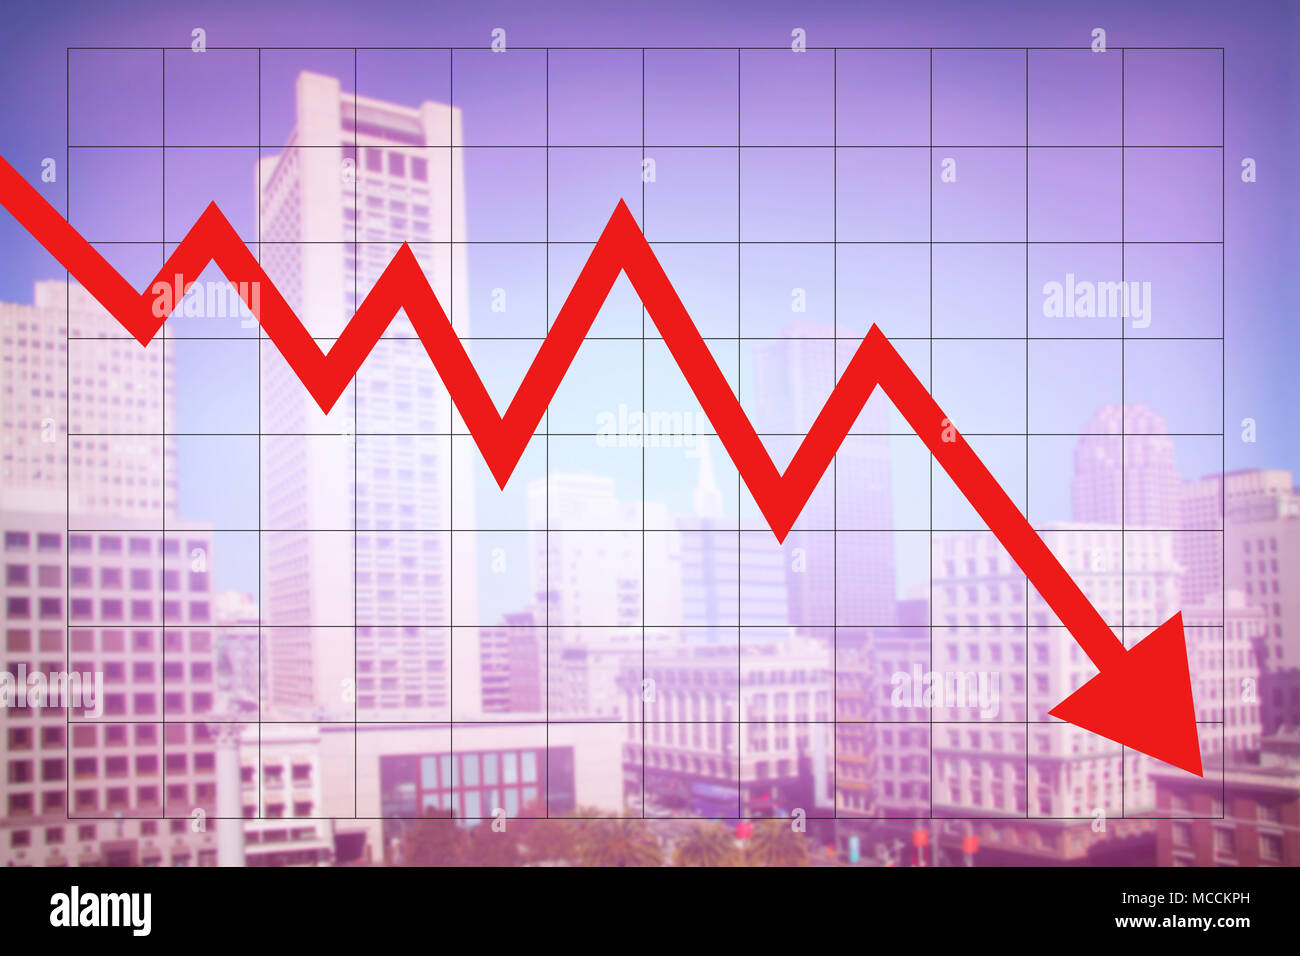 Real Estate Market Economy With Decreasing Graph And Red Arrow Going Down With Colorful Blurred Cityscape Background Stock Photo Alamy